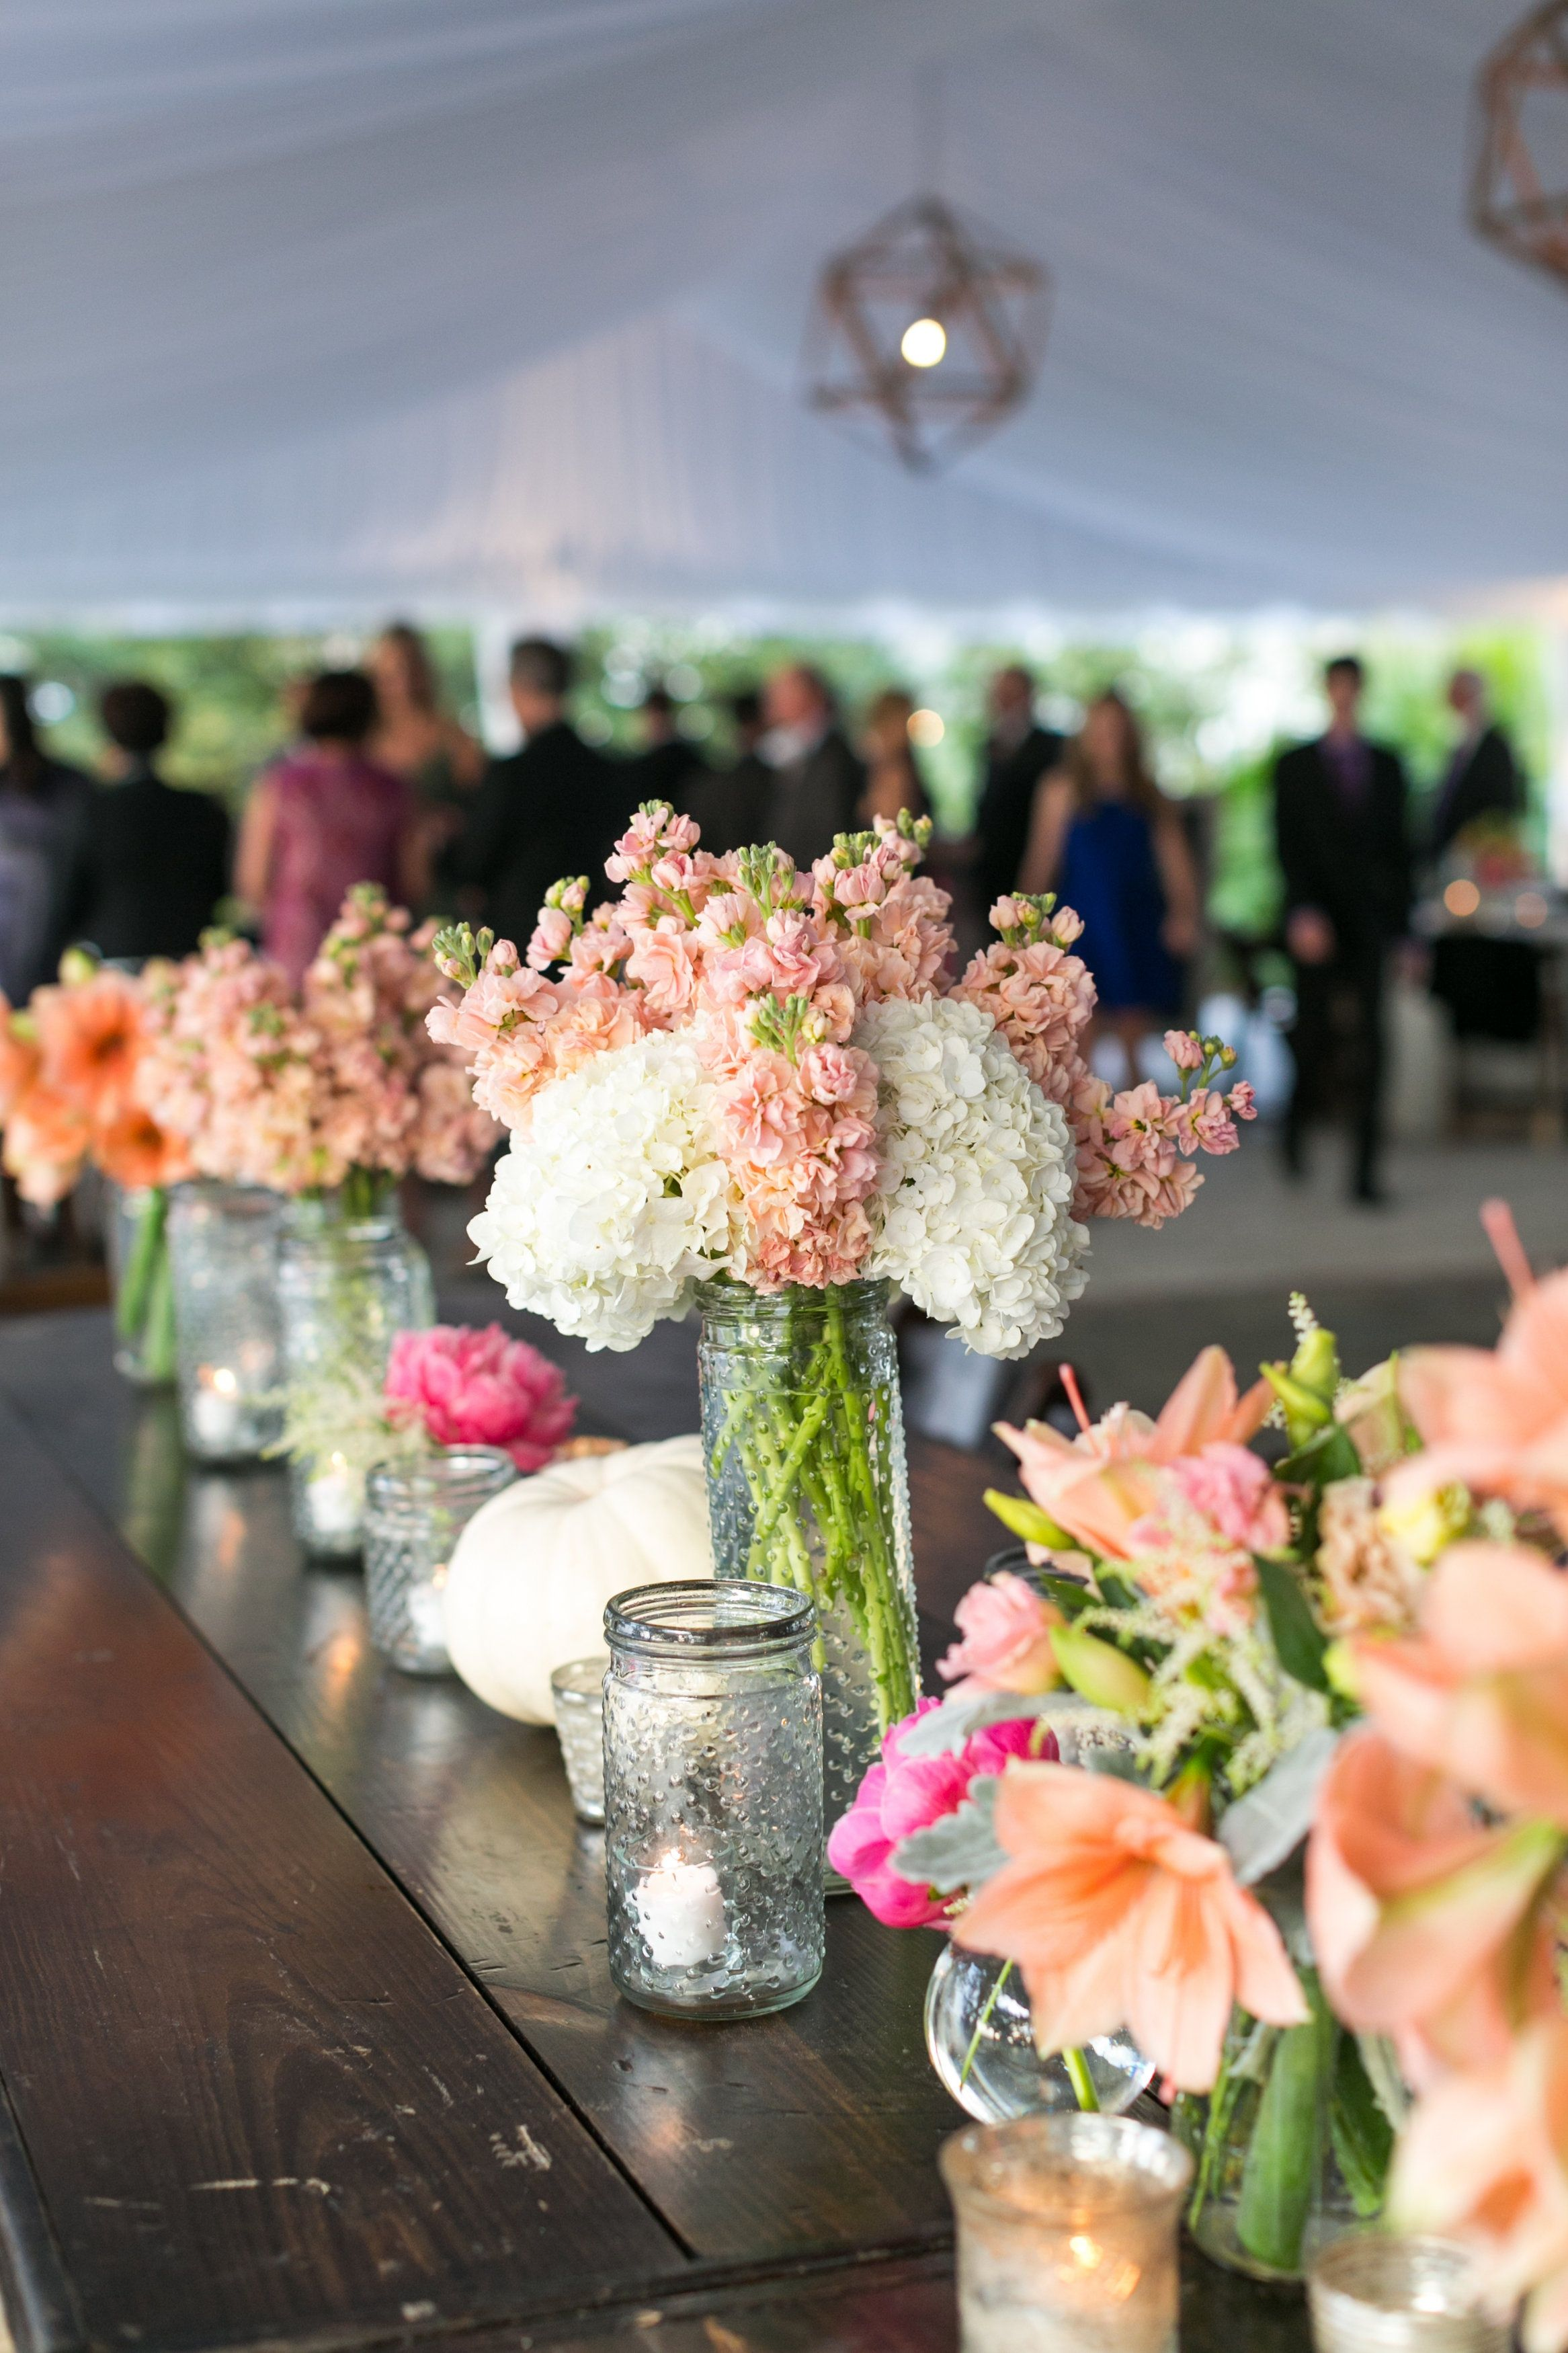 Pastel Flowers in Dotted Mason Jars for Reception Decor | Dana Cubbage Weddings | theknot.com